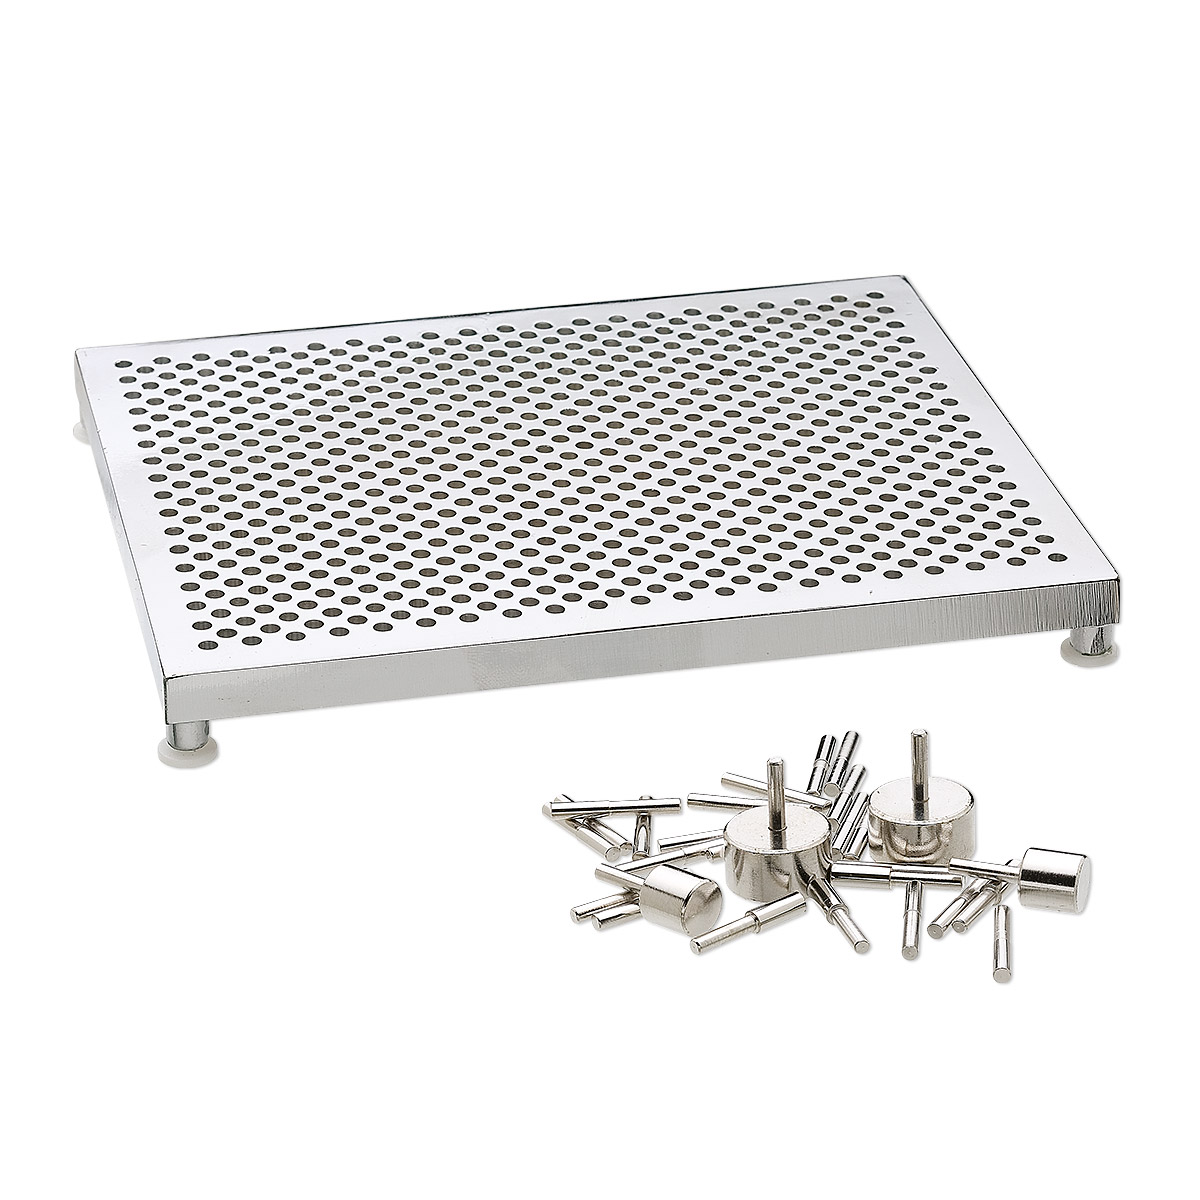 Thing-A-Ma-Jig, aluminum, 5-1/2 x 4-1/2 inch deluxe model wire jig ...